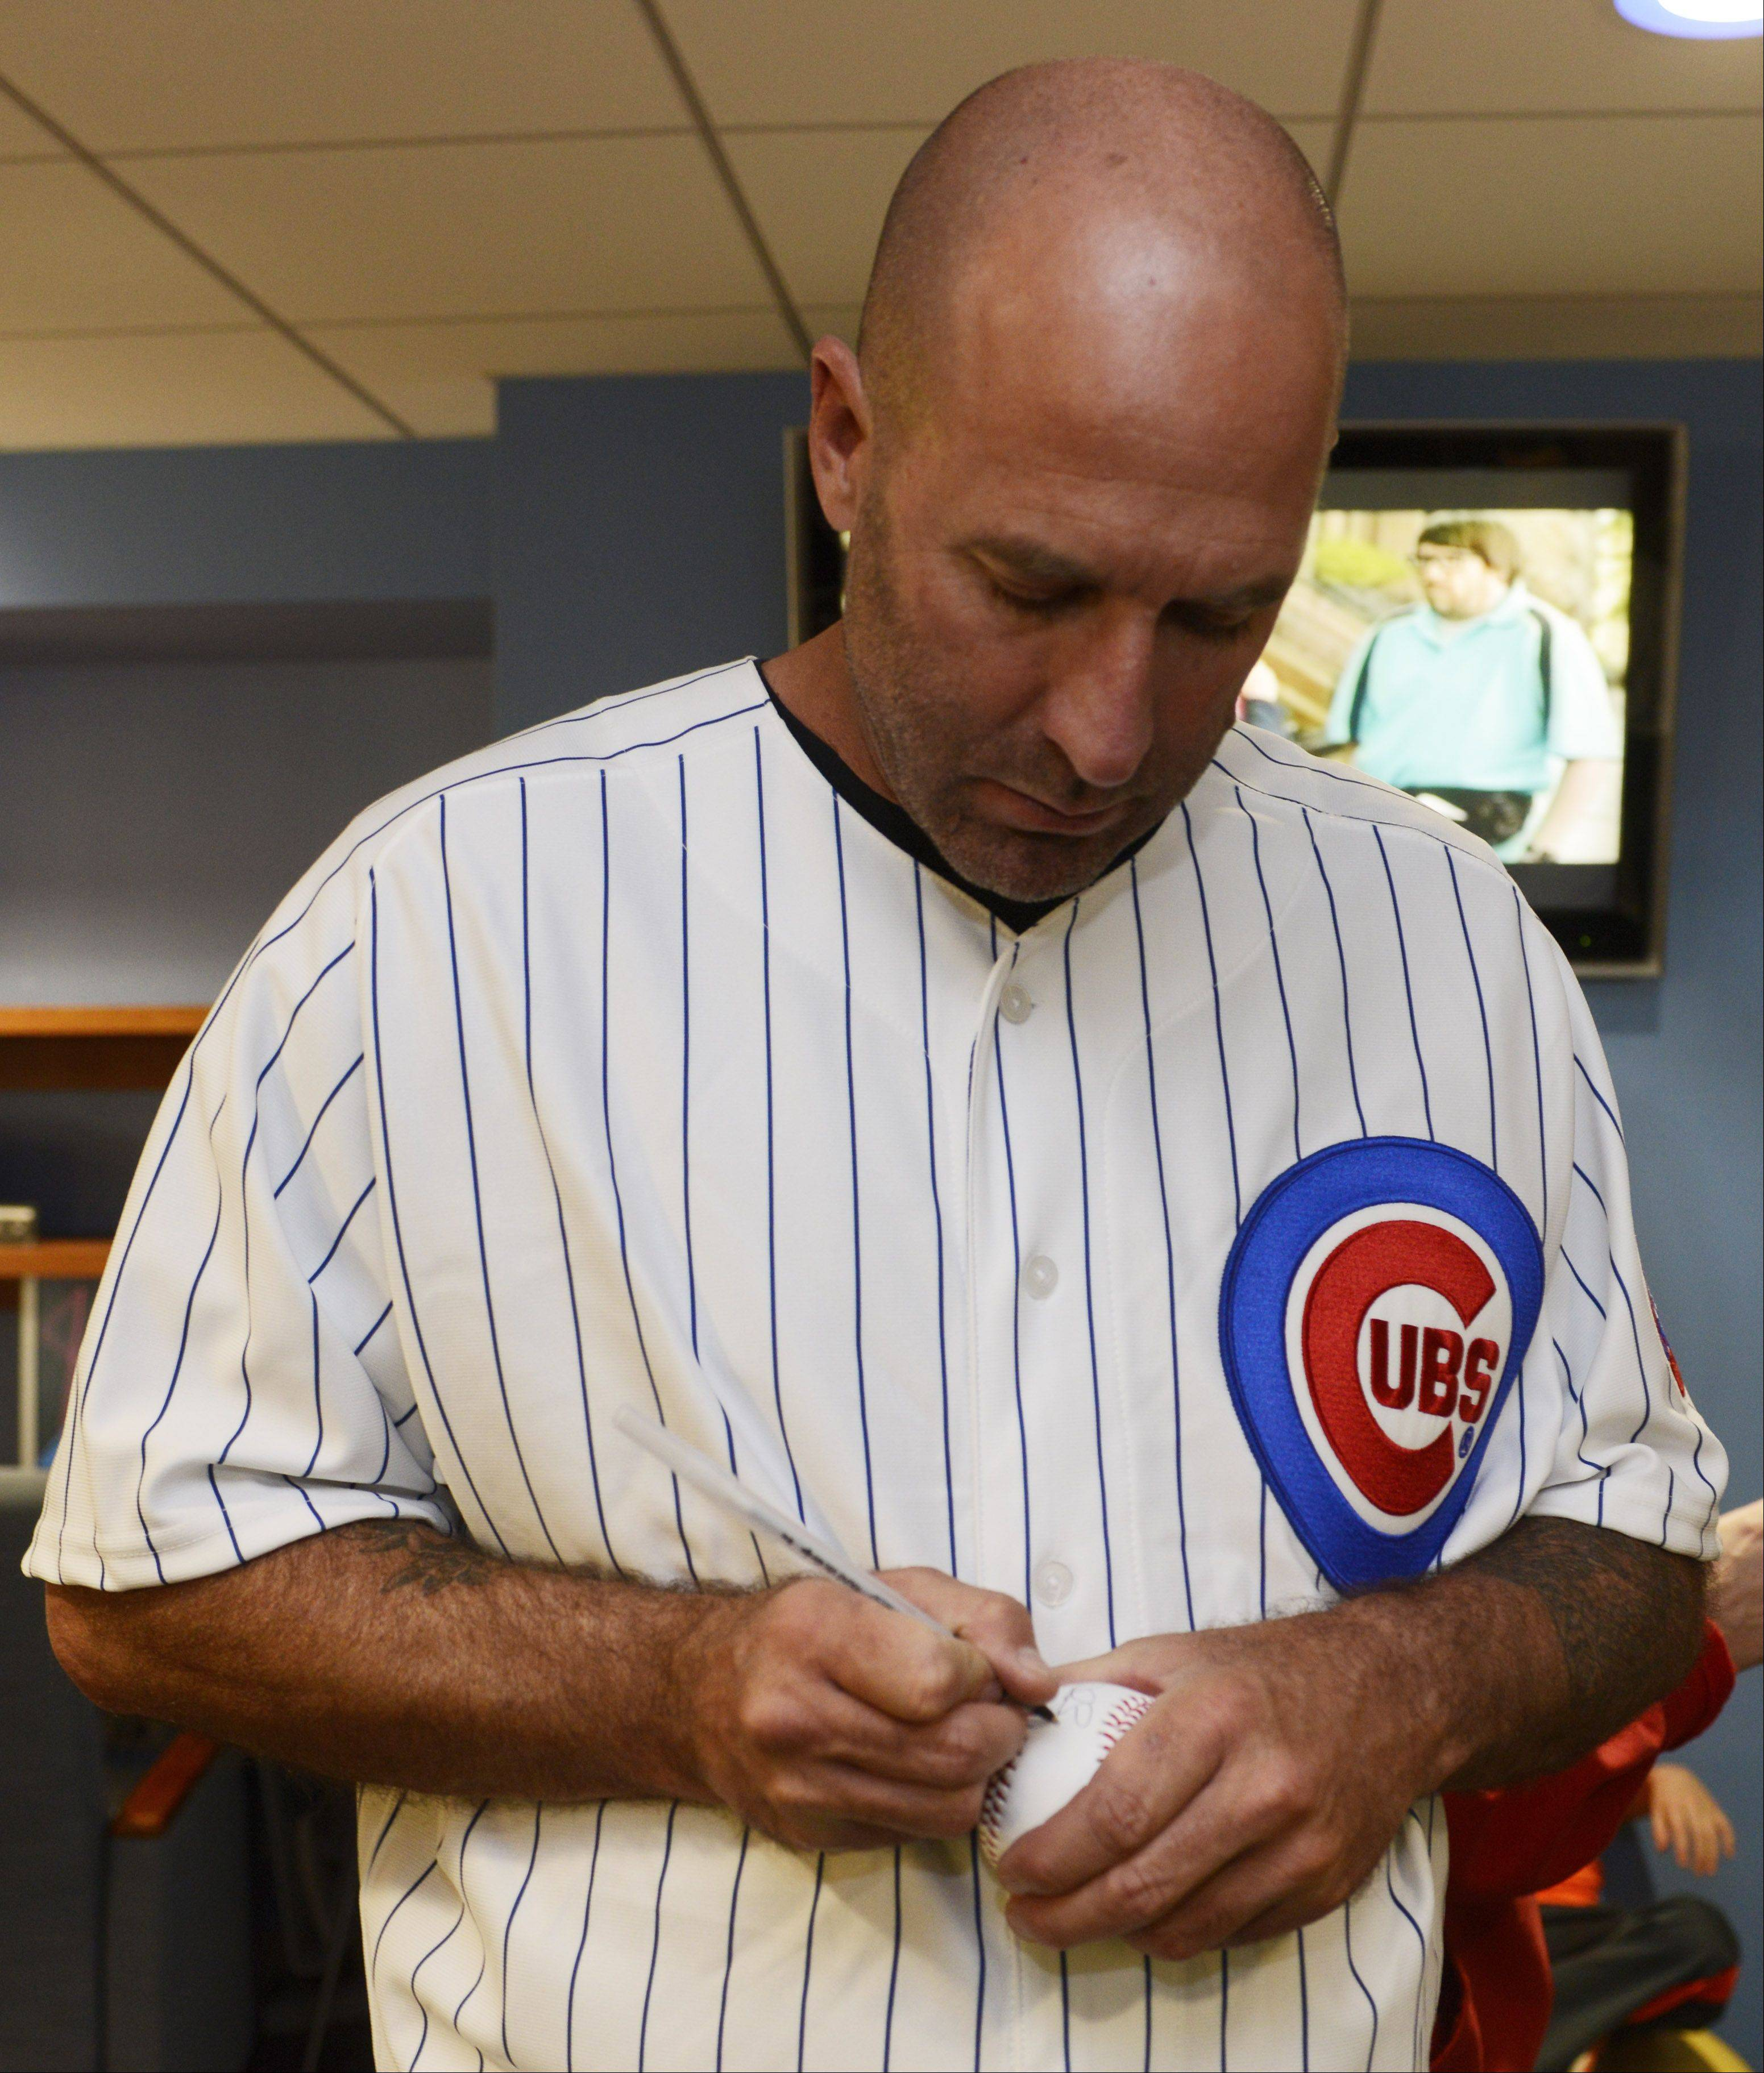 Cubs manager Dale Sveum is looking for his team to compete at a higher level this season.